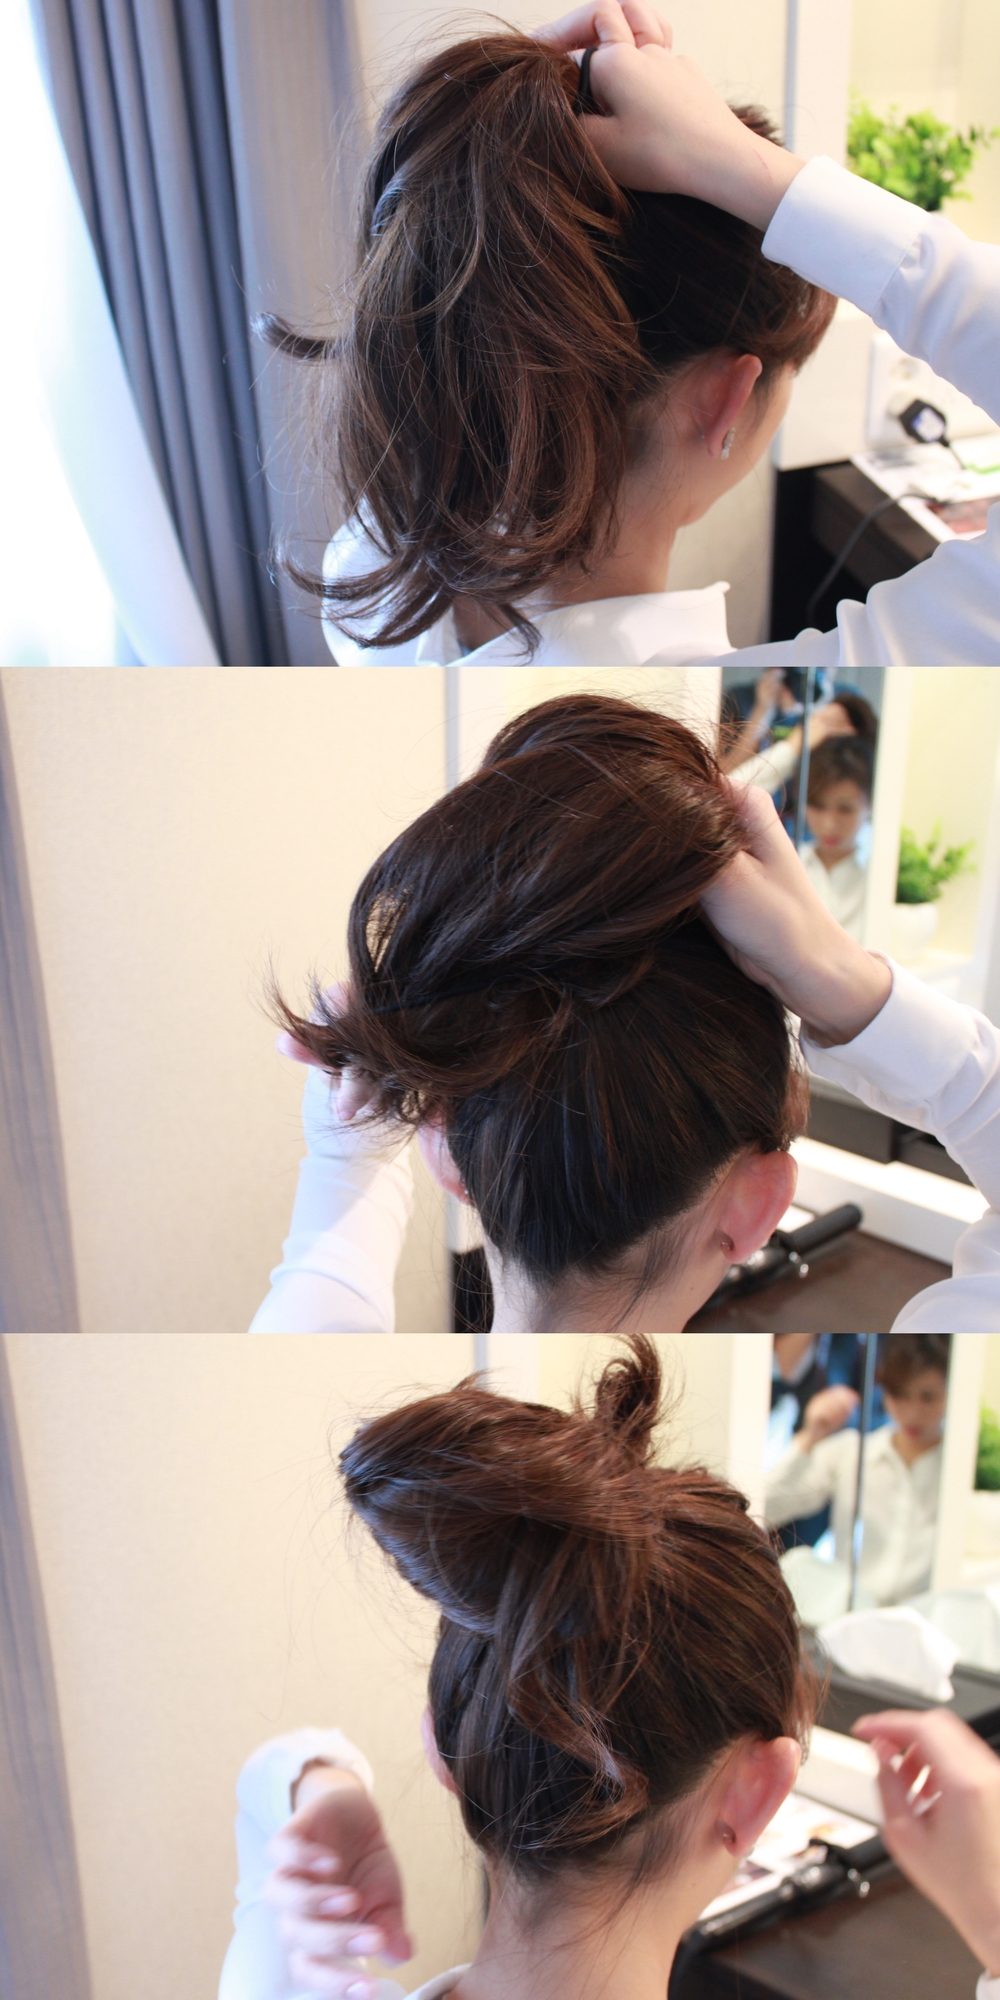 Tie a ponytail into a half-open ball.